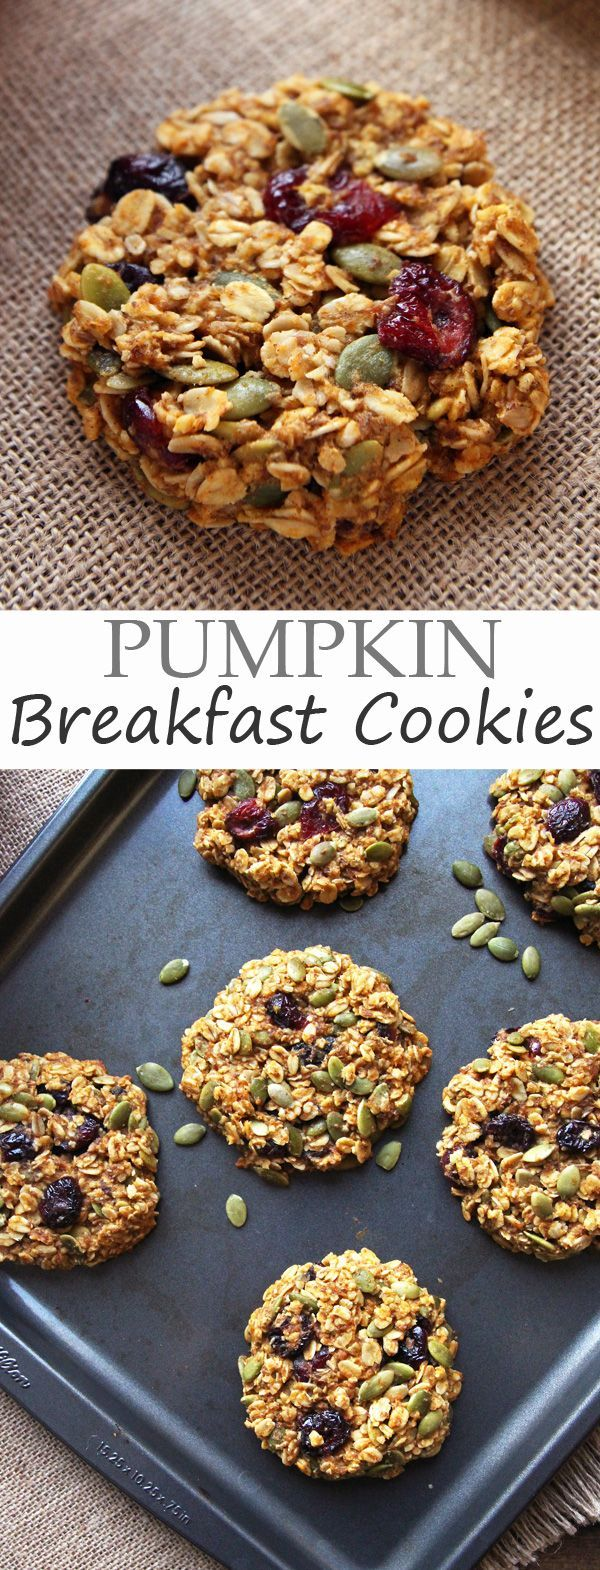 Healthy Pumpkin Breakfast Cookies! Simple way to start the day. Make a big batch, kids love these for after school too!